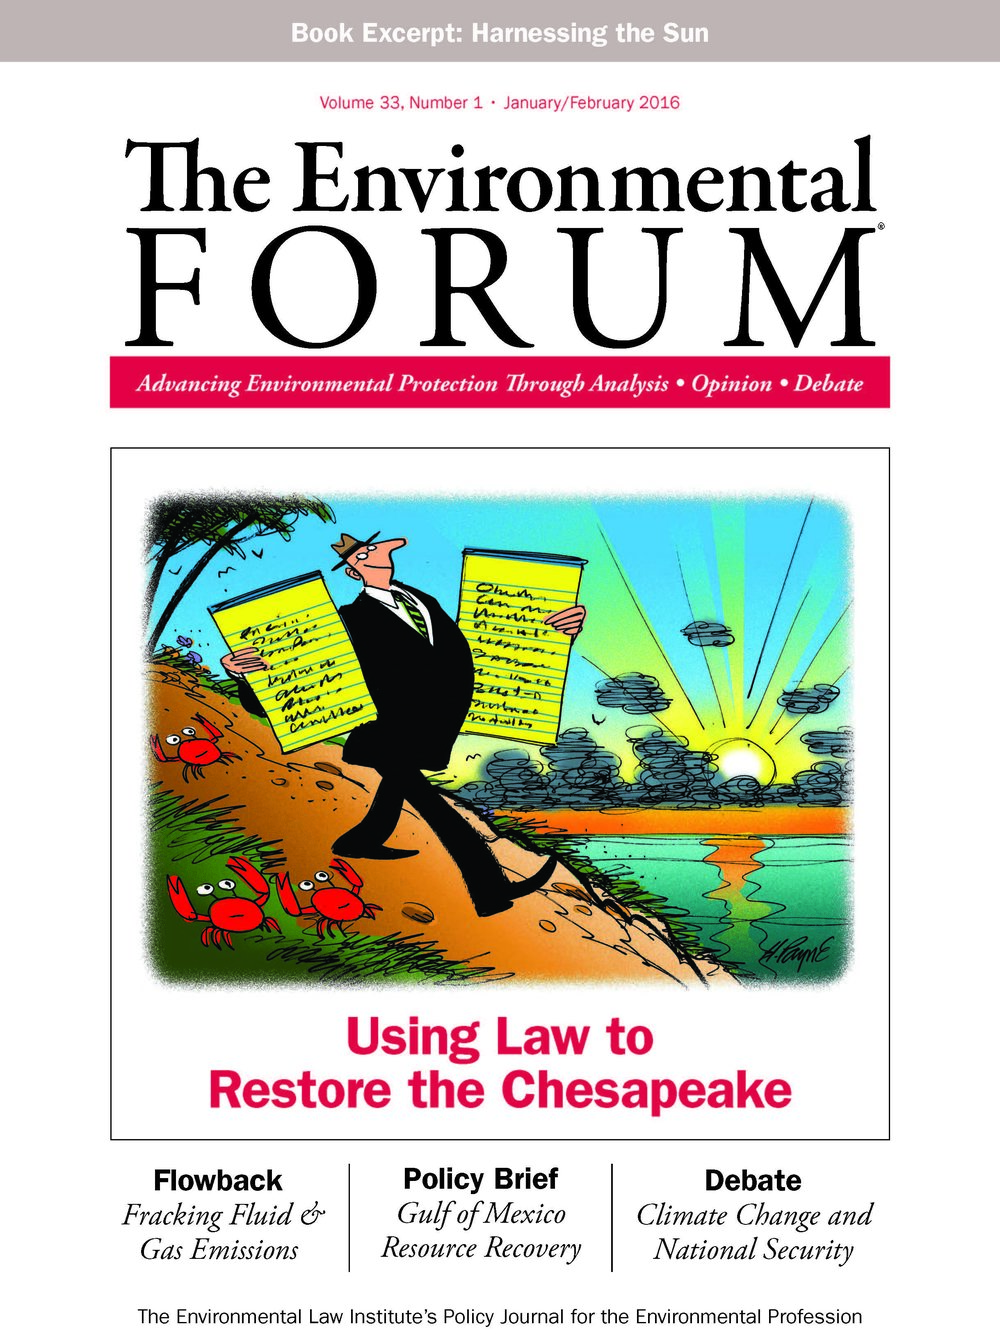 Restore the Chesapeake, Env Forum 2016 (1)_Page_1.jpg